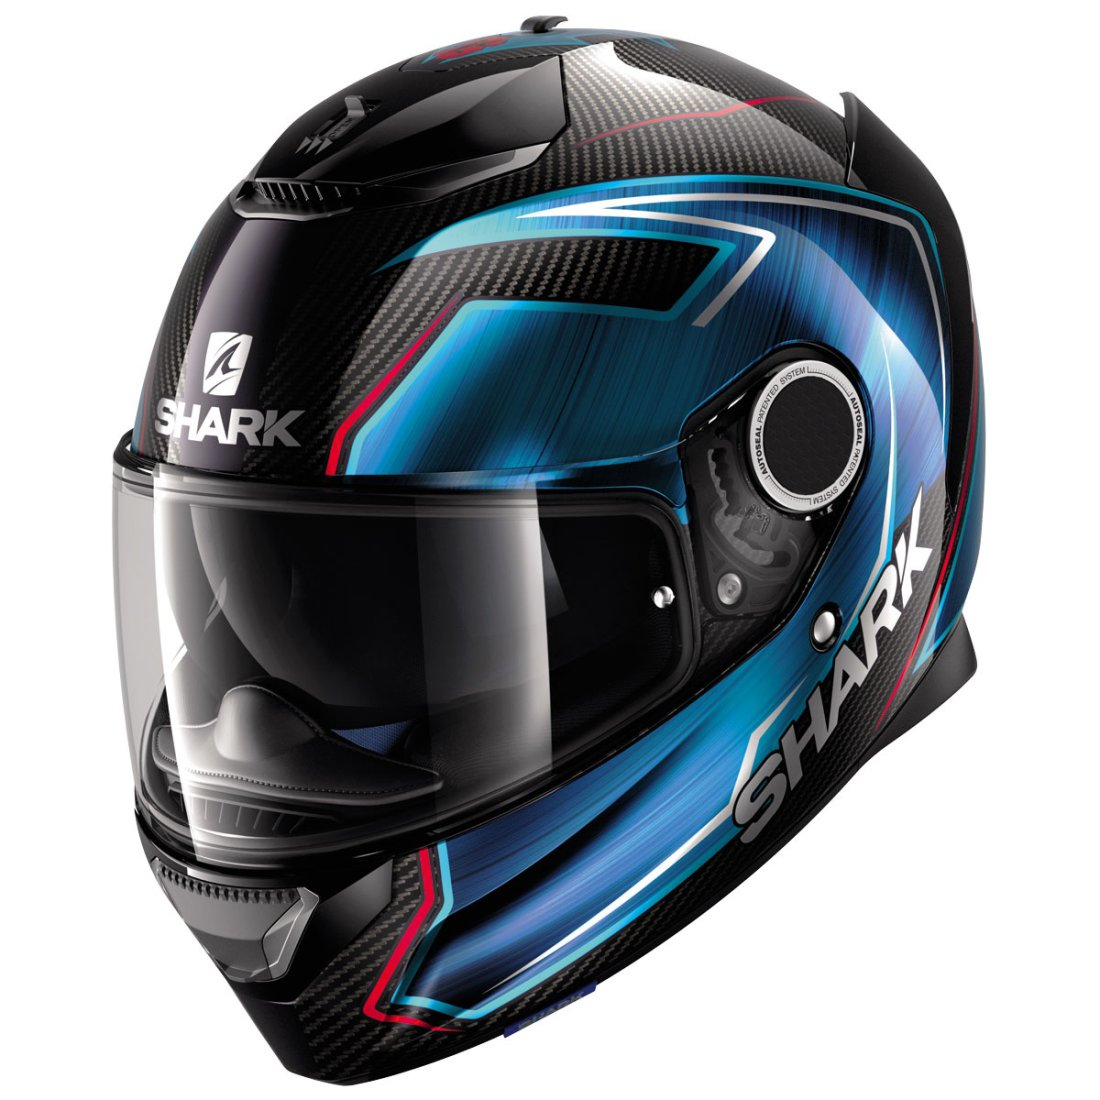 casque shark spartan carbon replica guintoli dub sasie center moto. Black Bedroom Furniture Sets. Home Design Ideas